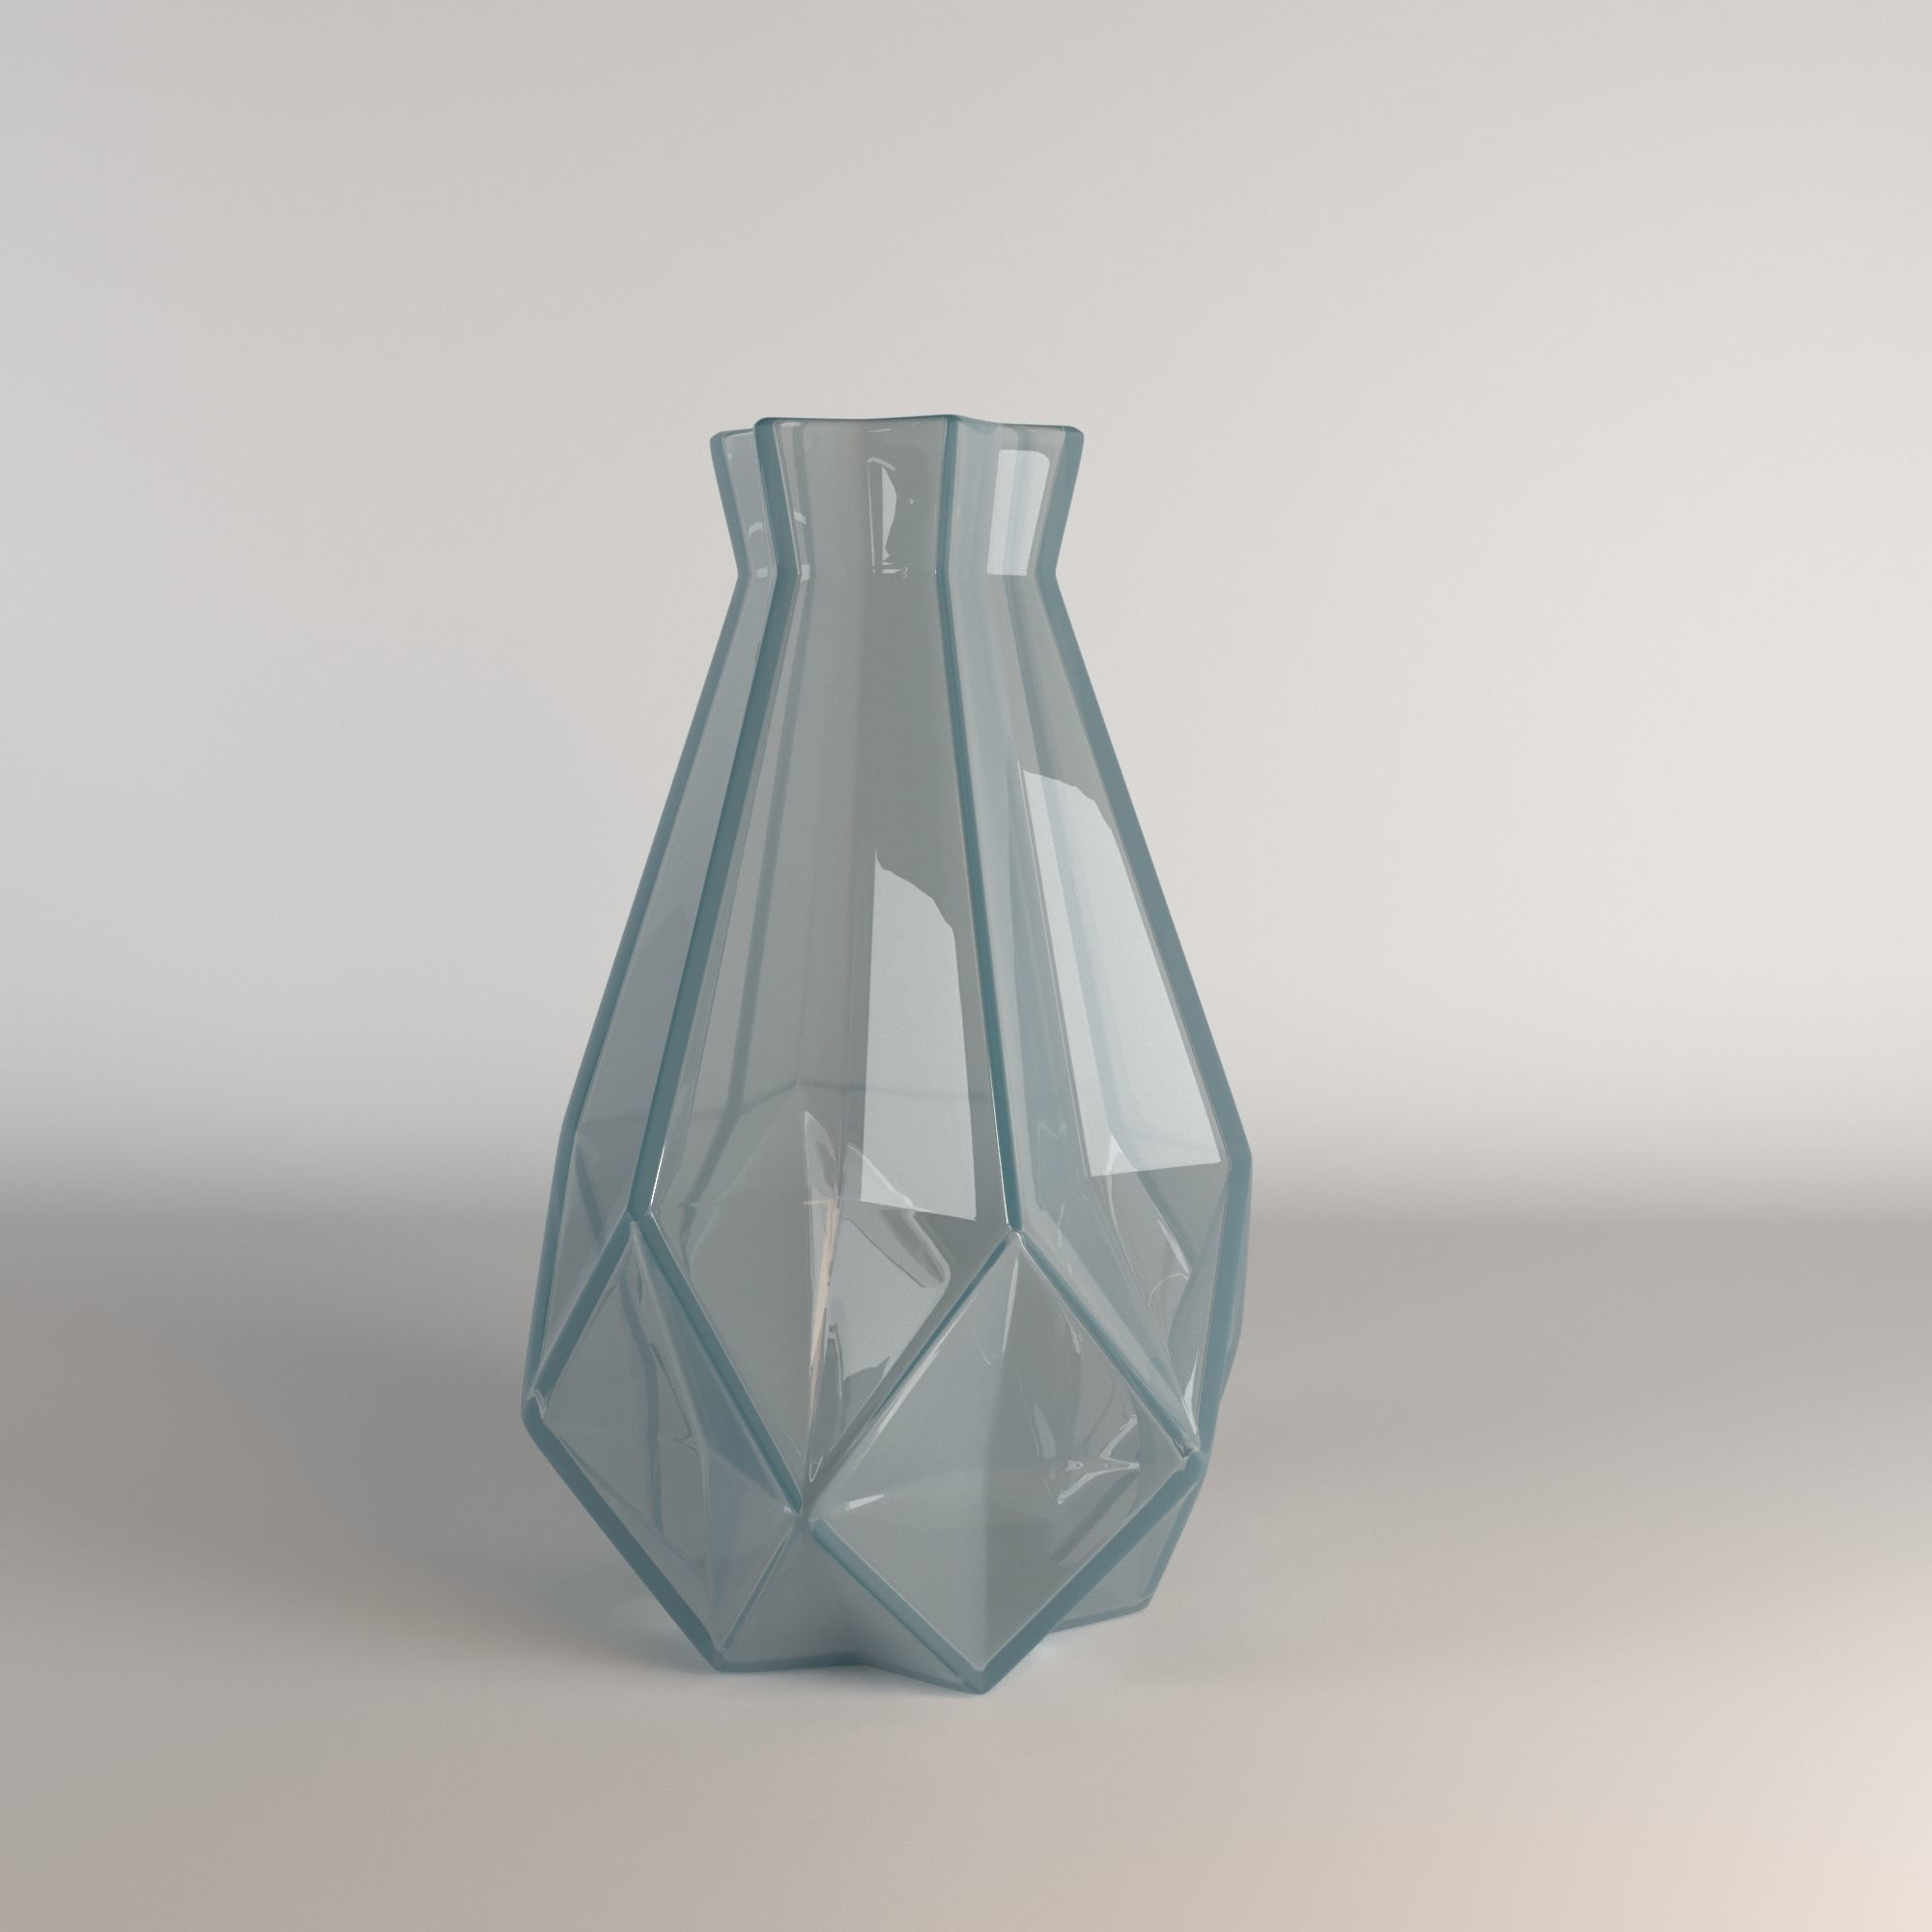 wang s meets soderstrom item vase m design printed vases soederstroem derstr collection digital